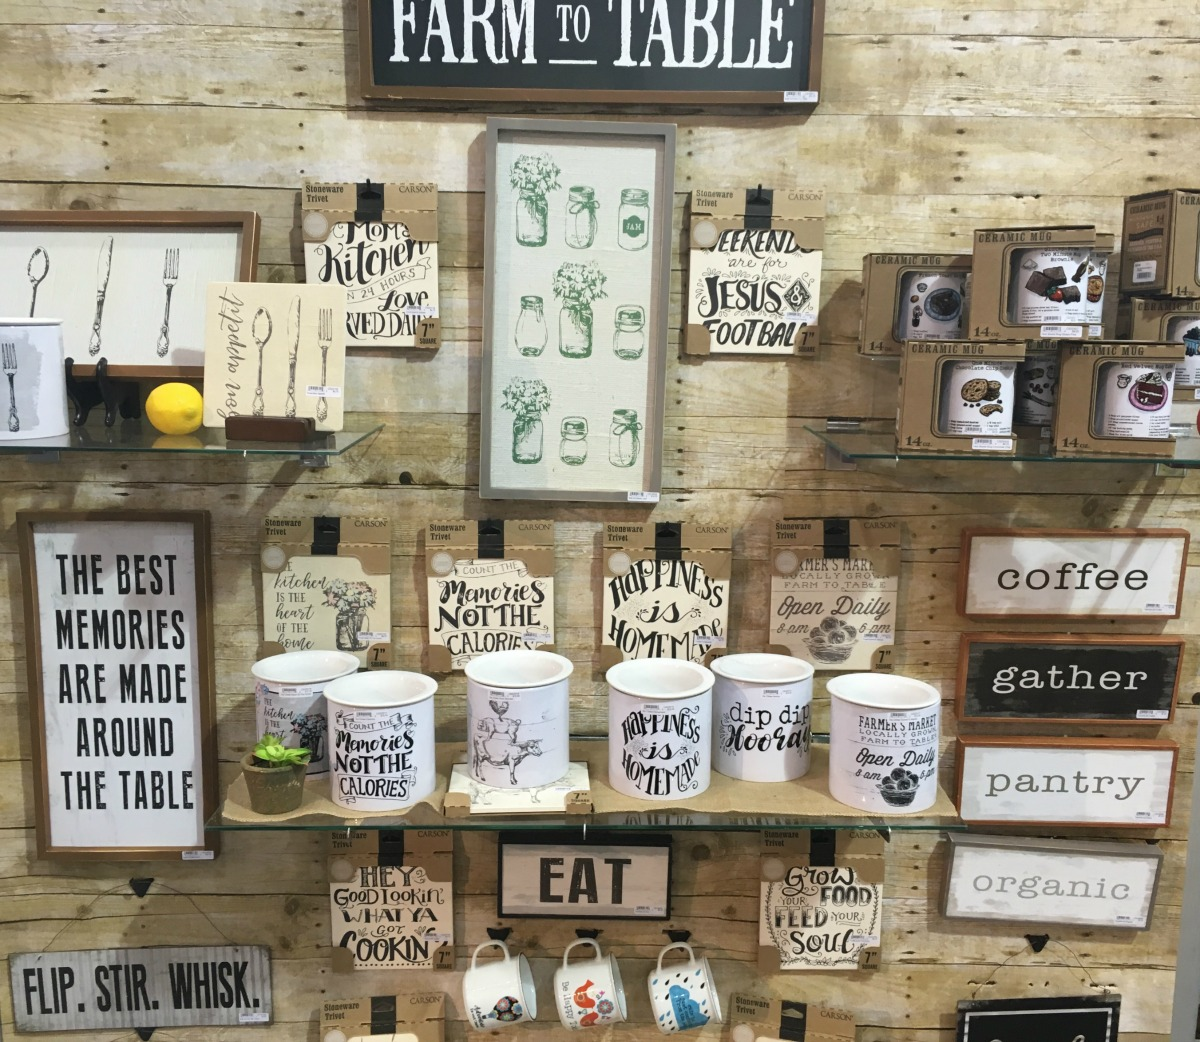 text decor trends kitchen farm to table